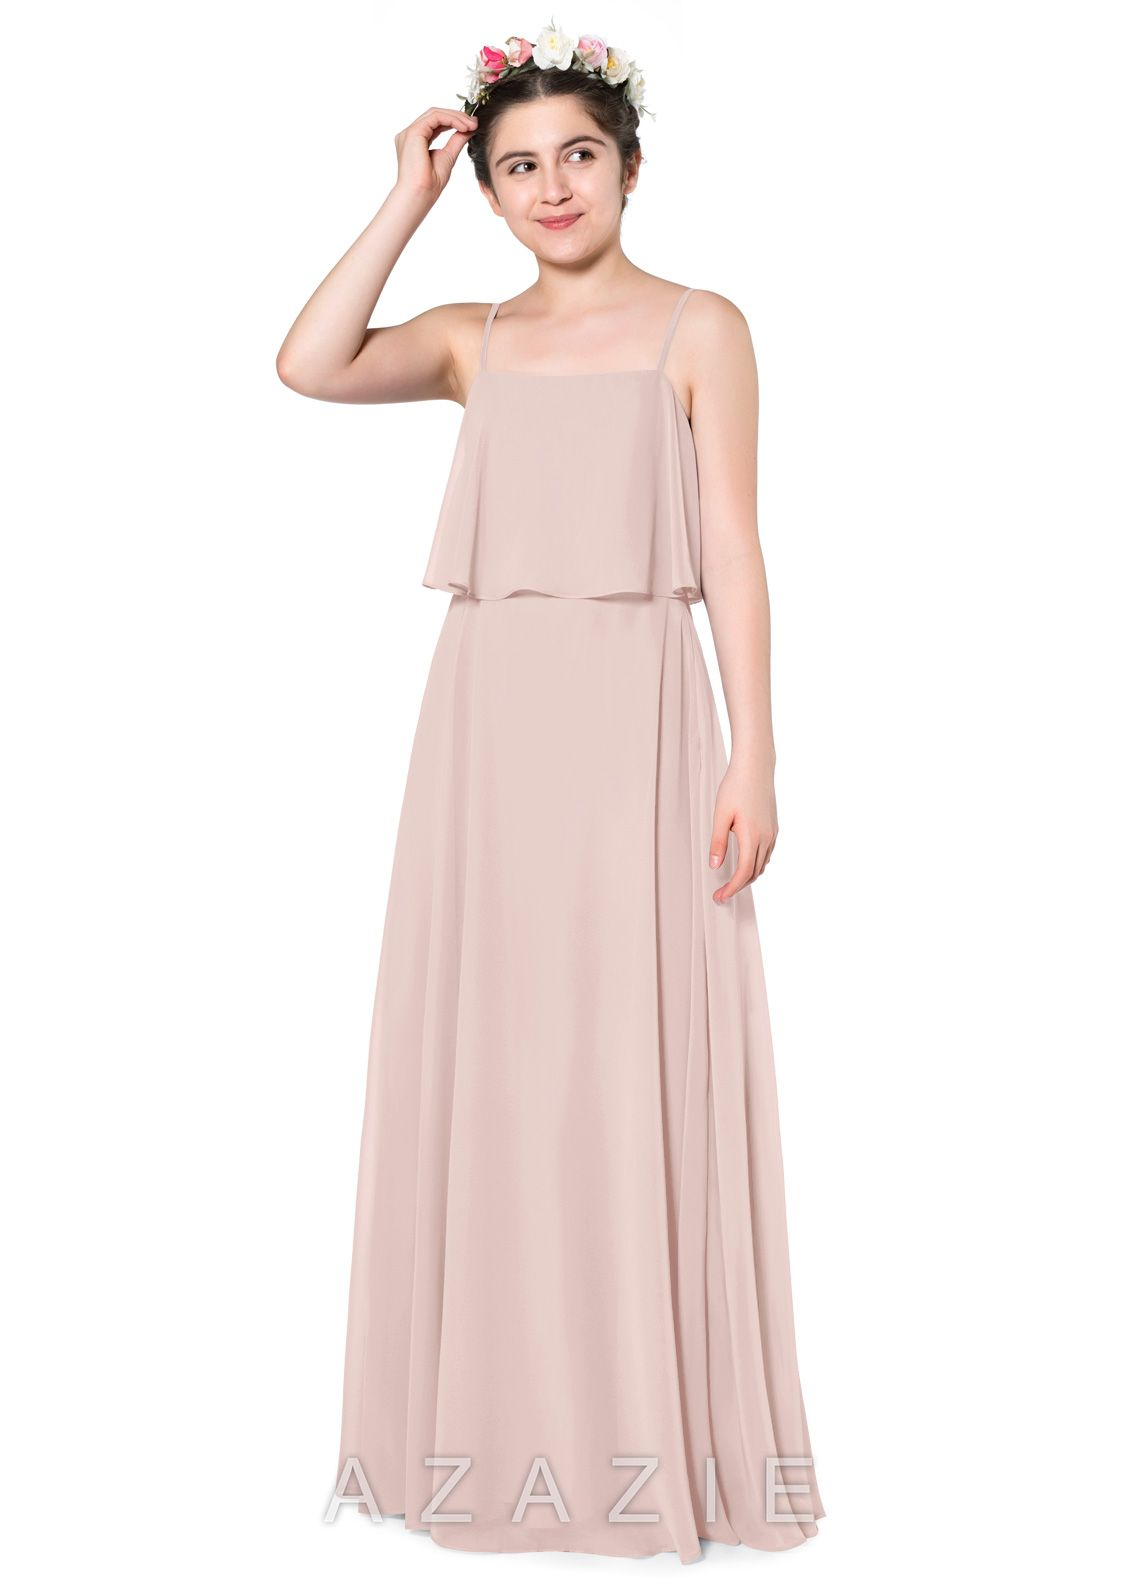 Azazie Izabella JBD Junior Bridesmaid Dress